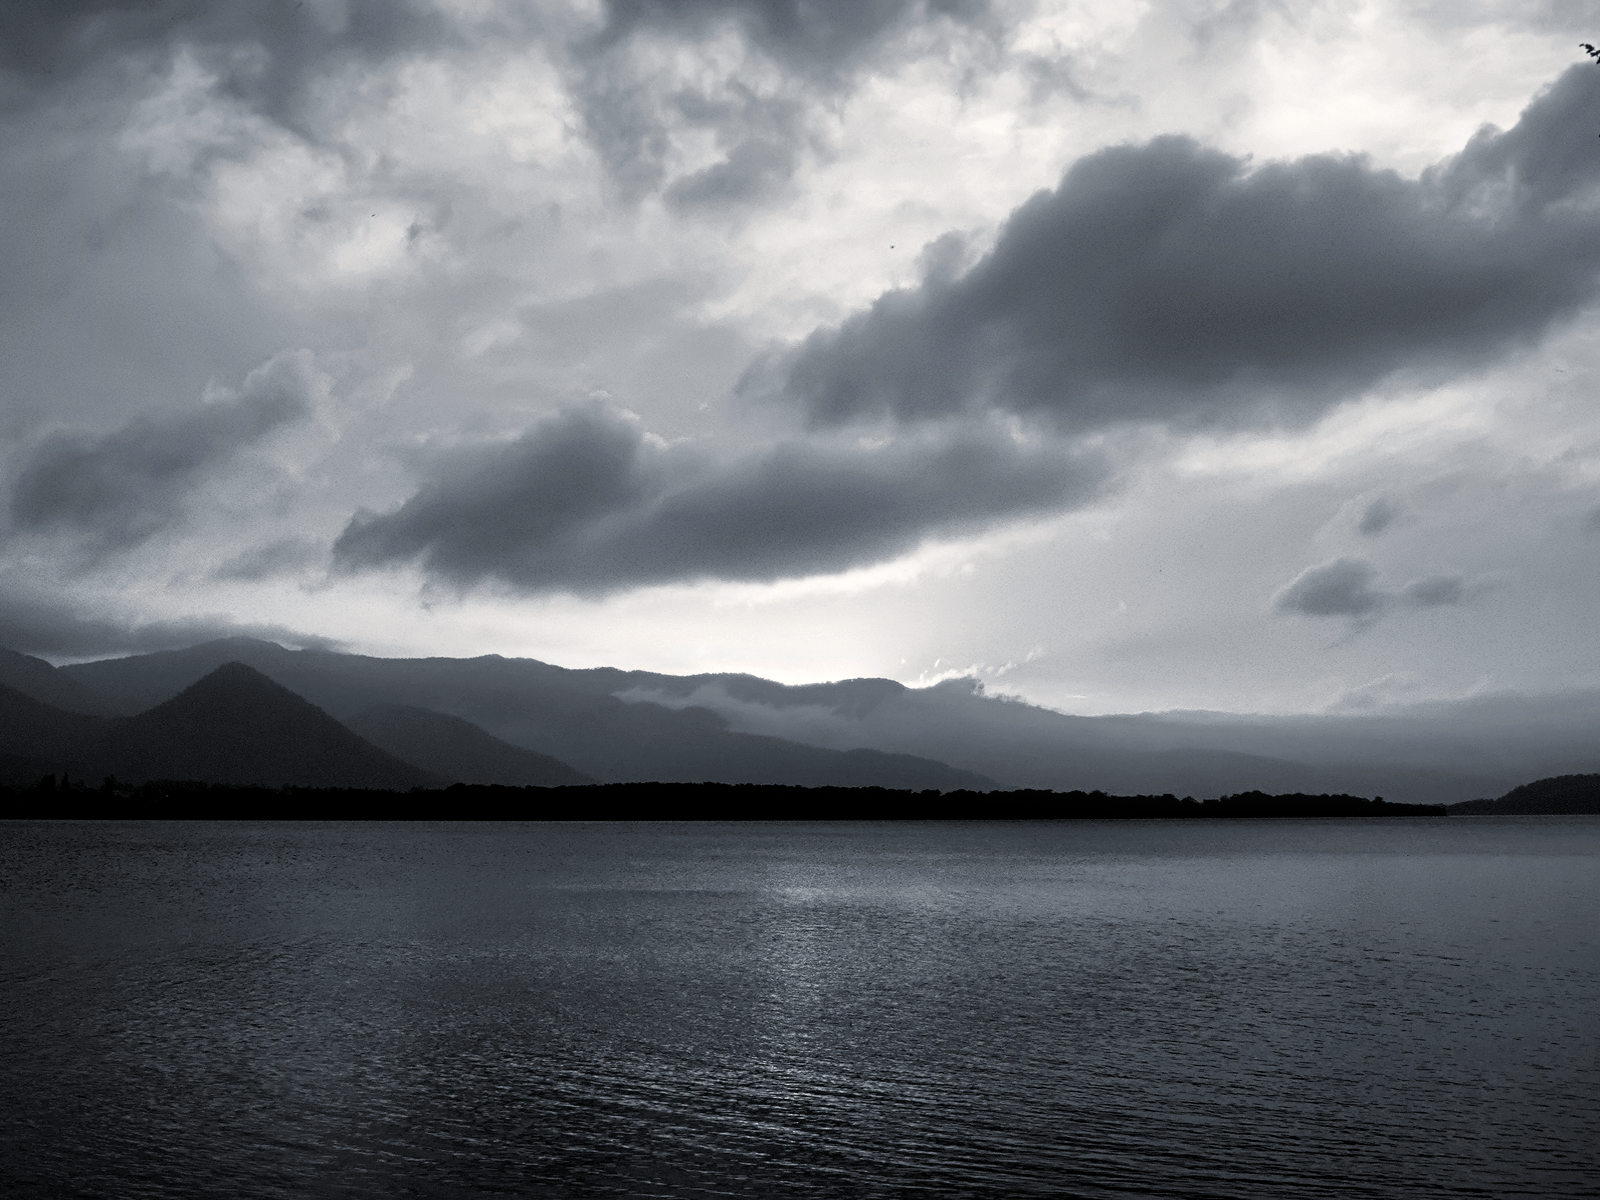 Download Black And White Cloud Wallpaper Gallery